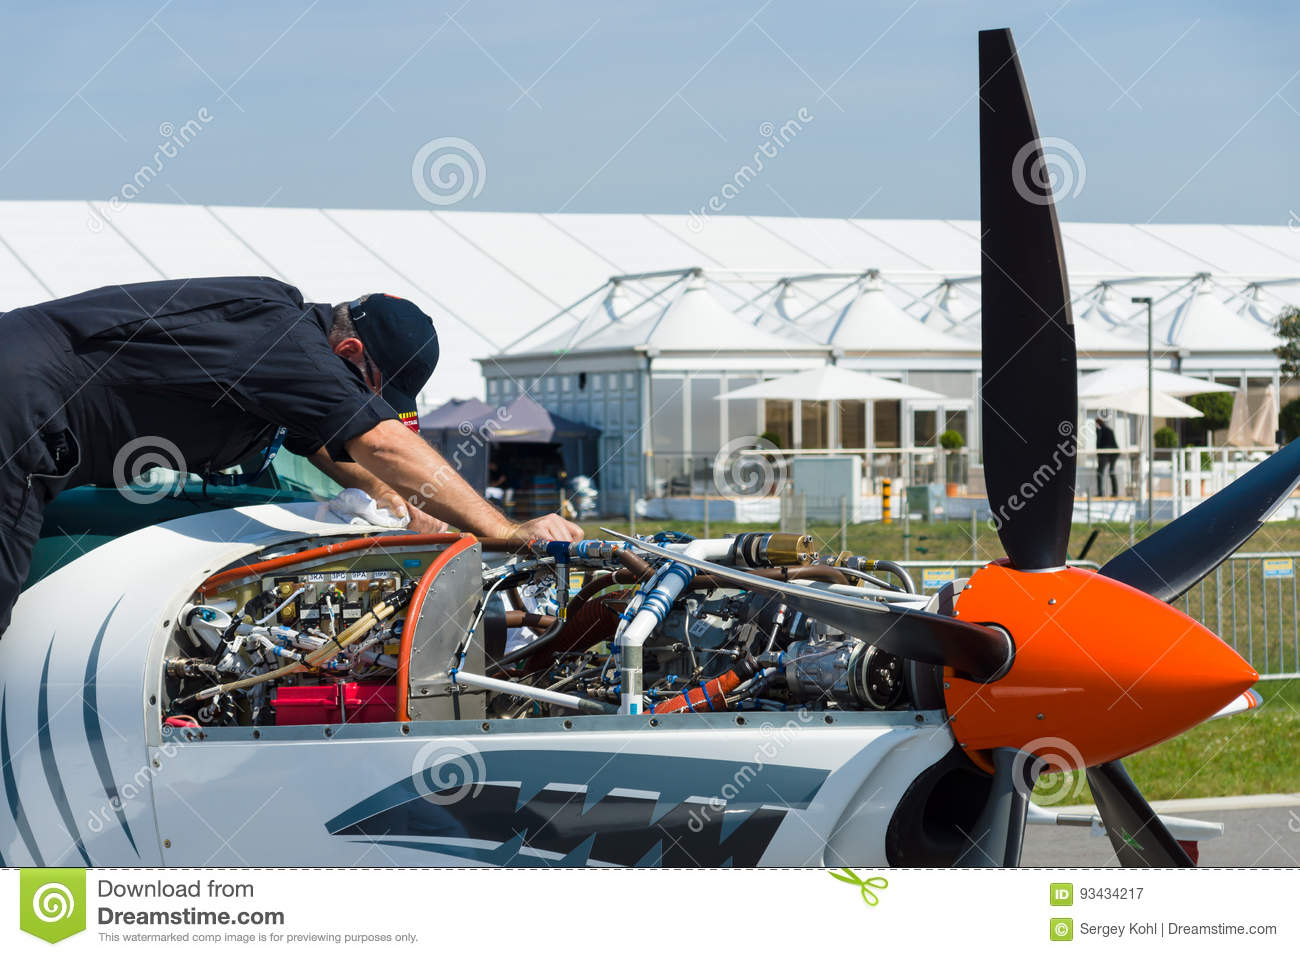 Technician inspects turboprop engine two-seater training and aerobatic low-wing aircraft Grob G 120TP.